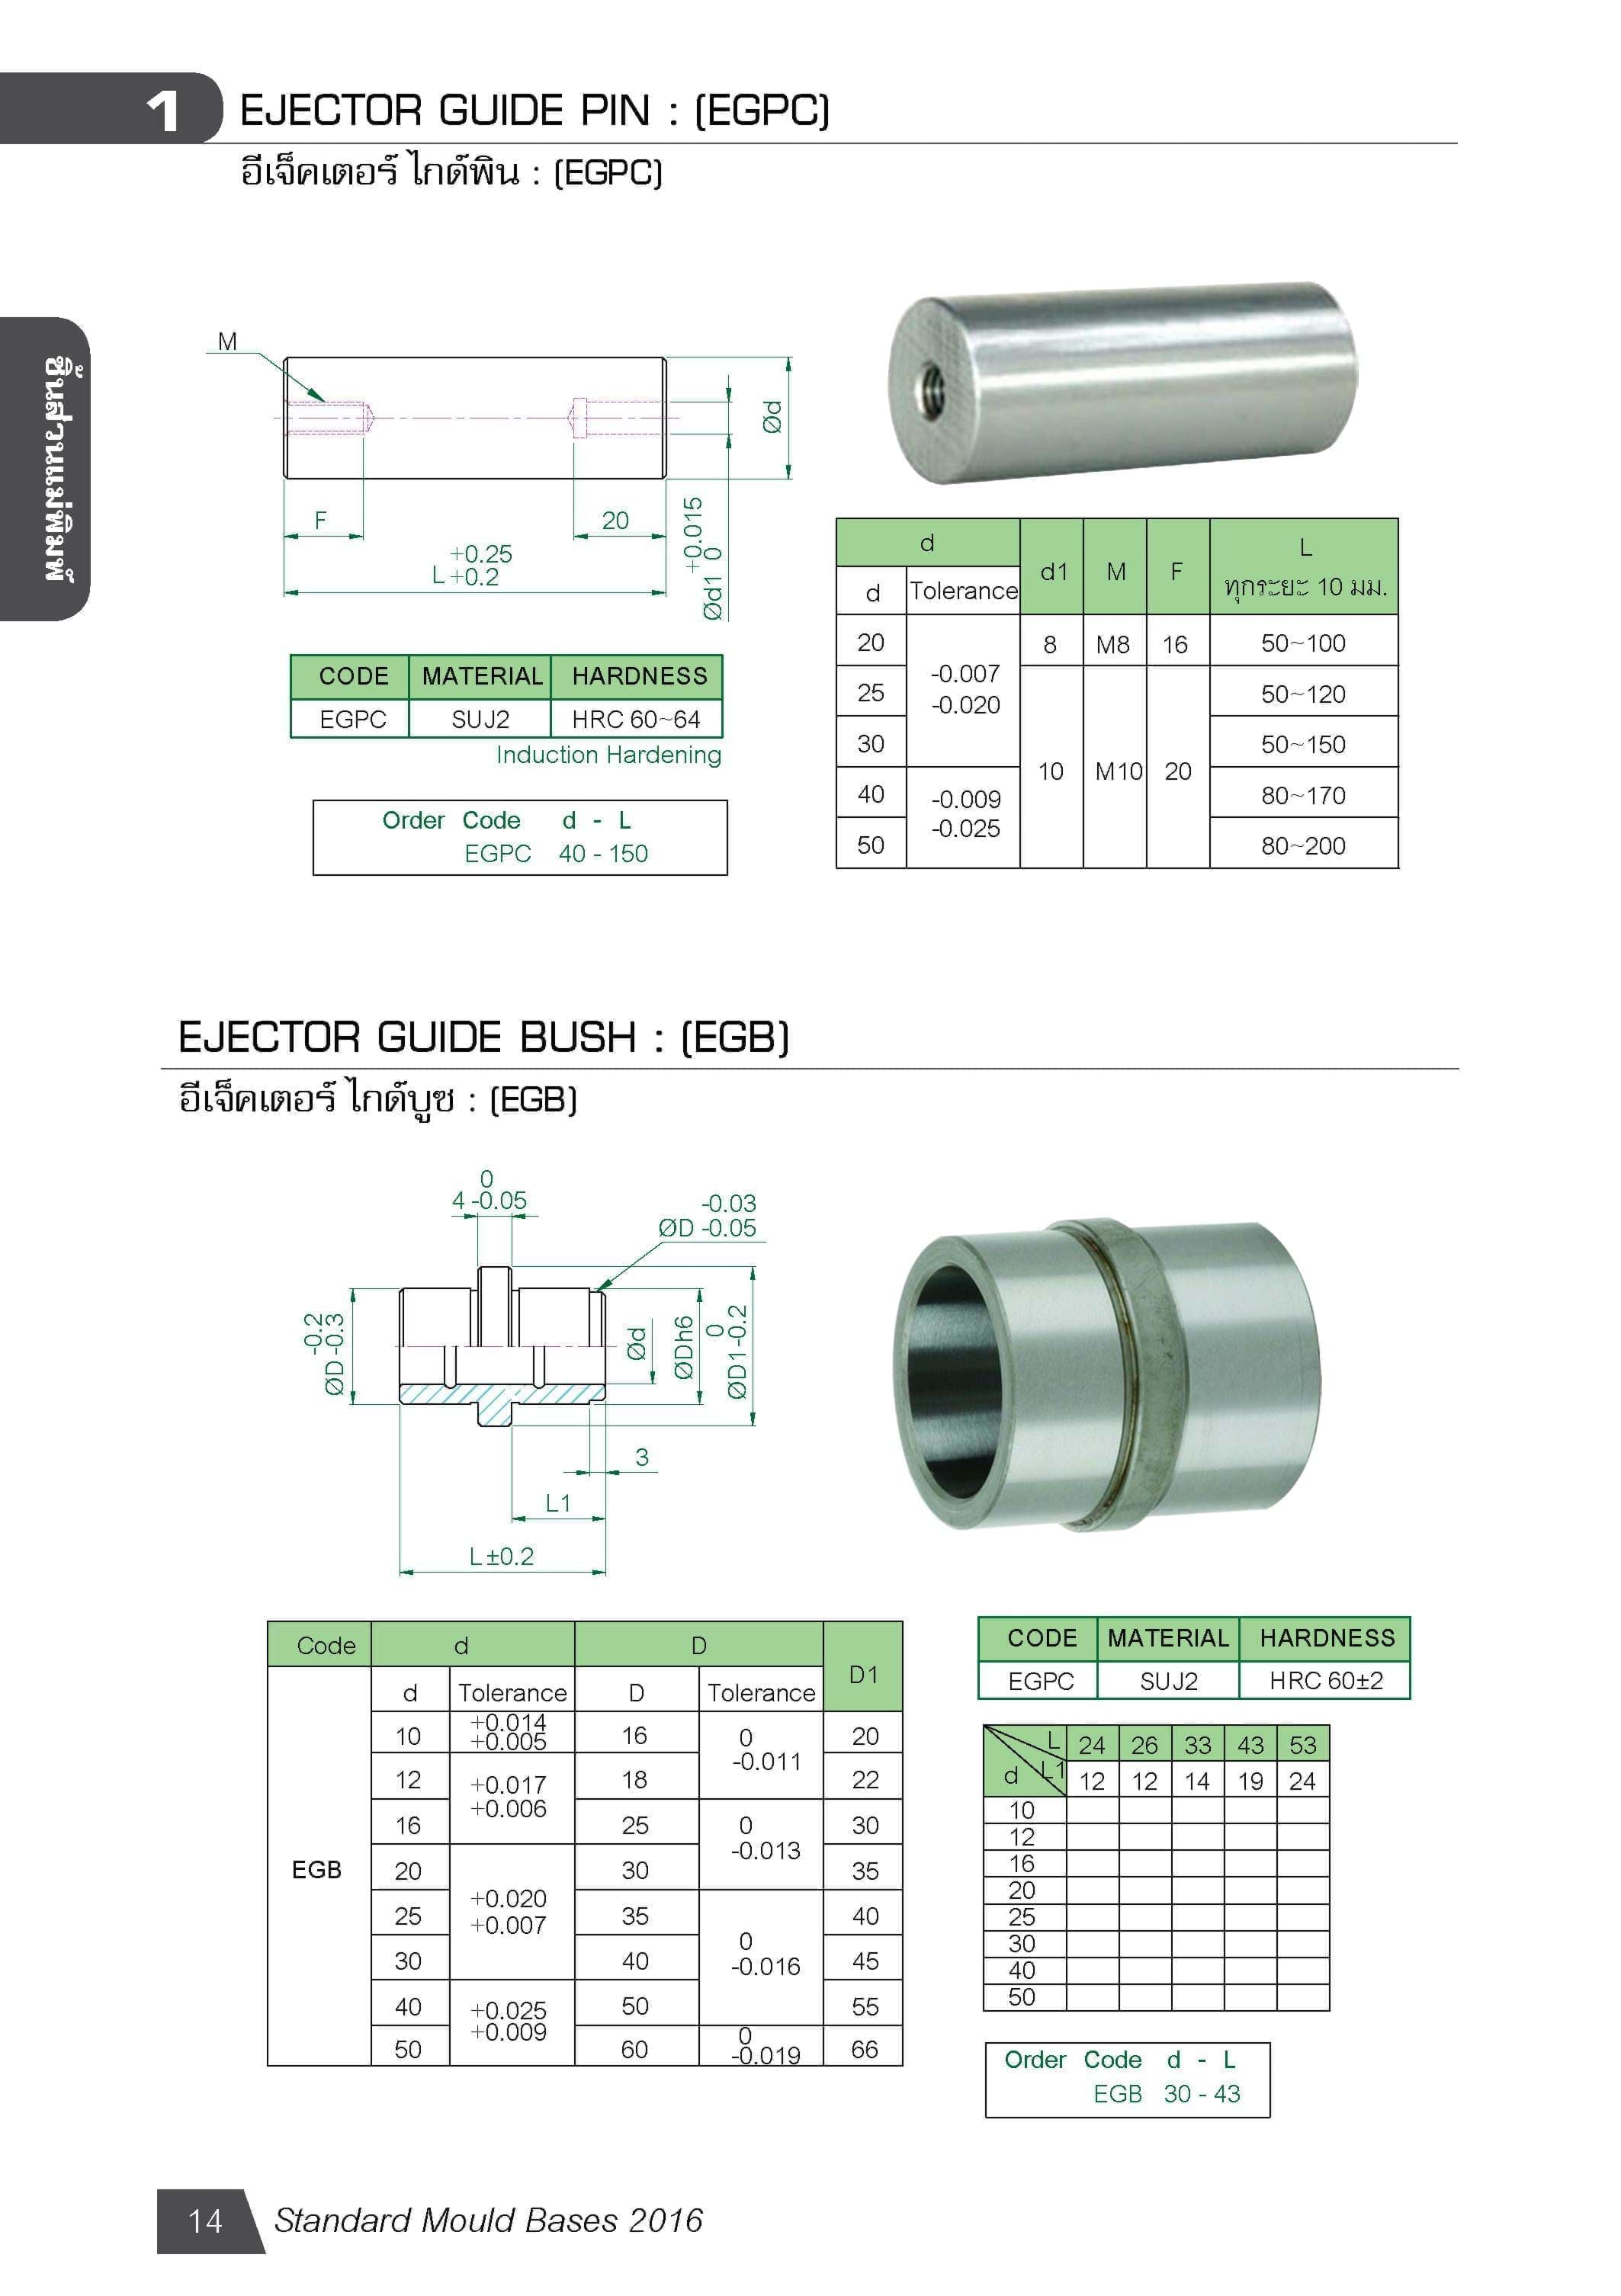 EJECTOR GUIDE PIN : (EGPC) MB01401